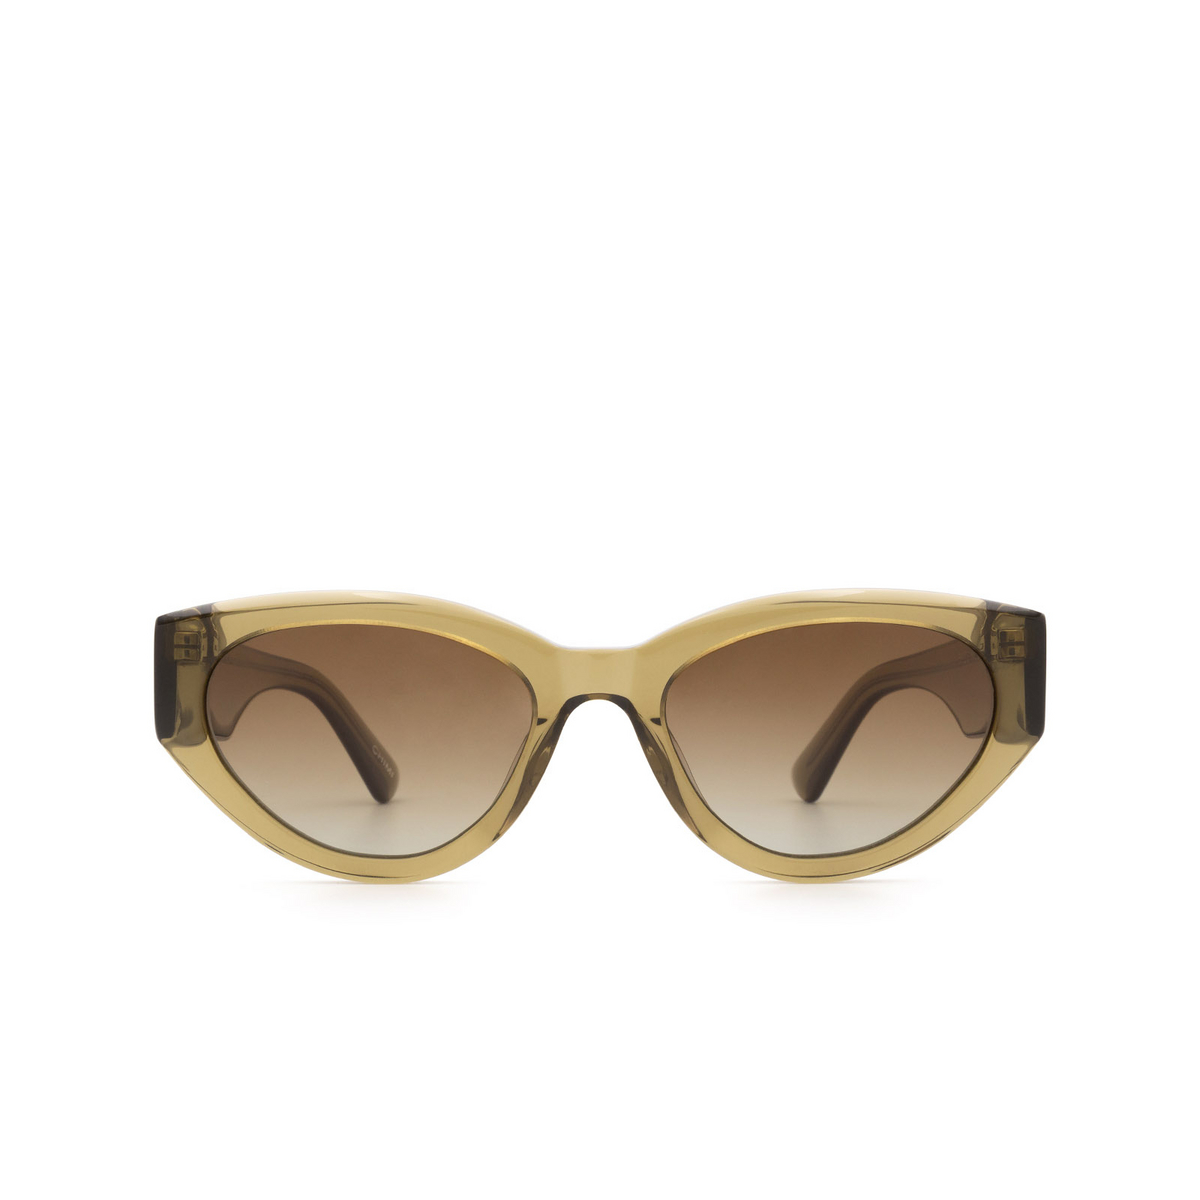 Chimi® Cat-eye Sunglasses: 06 color Green - front view.